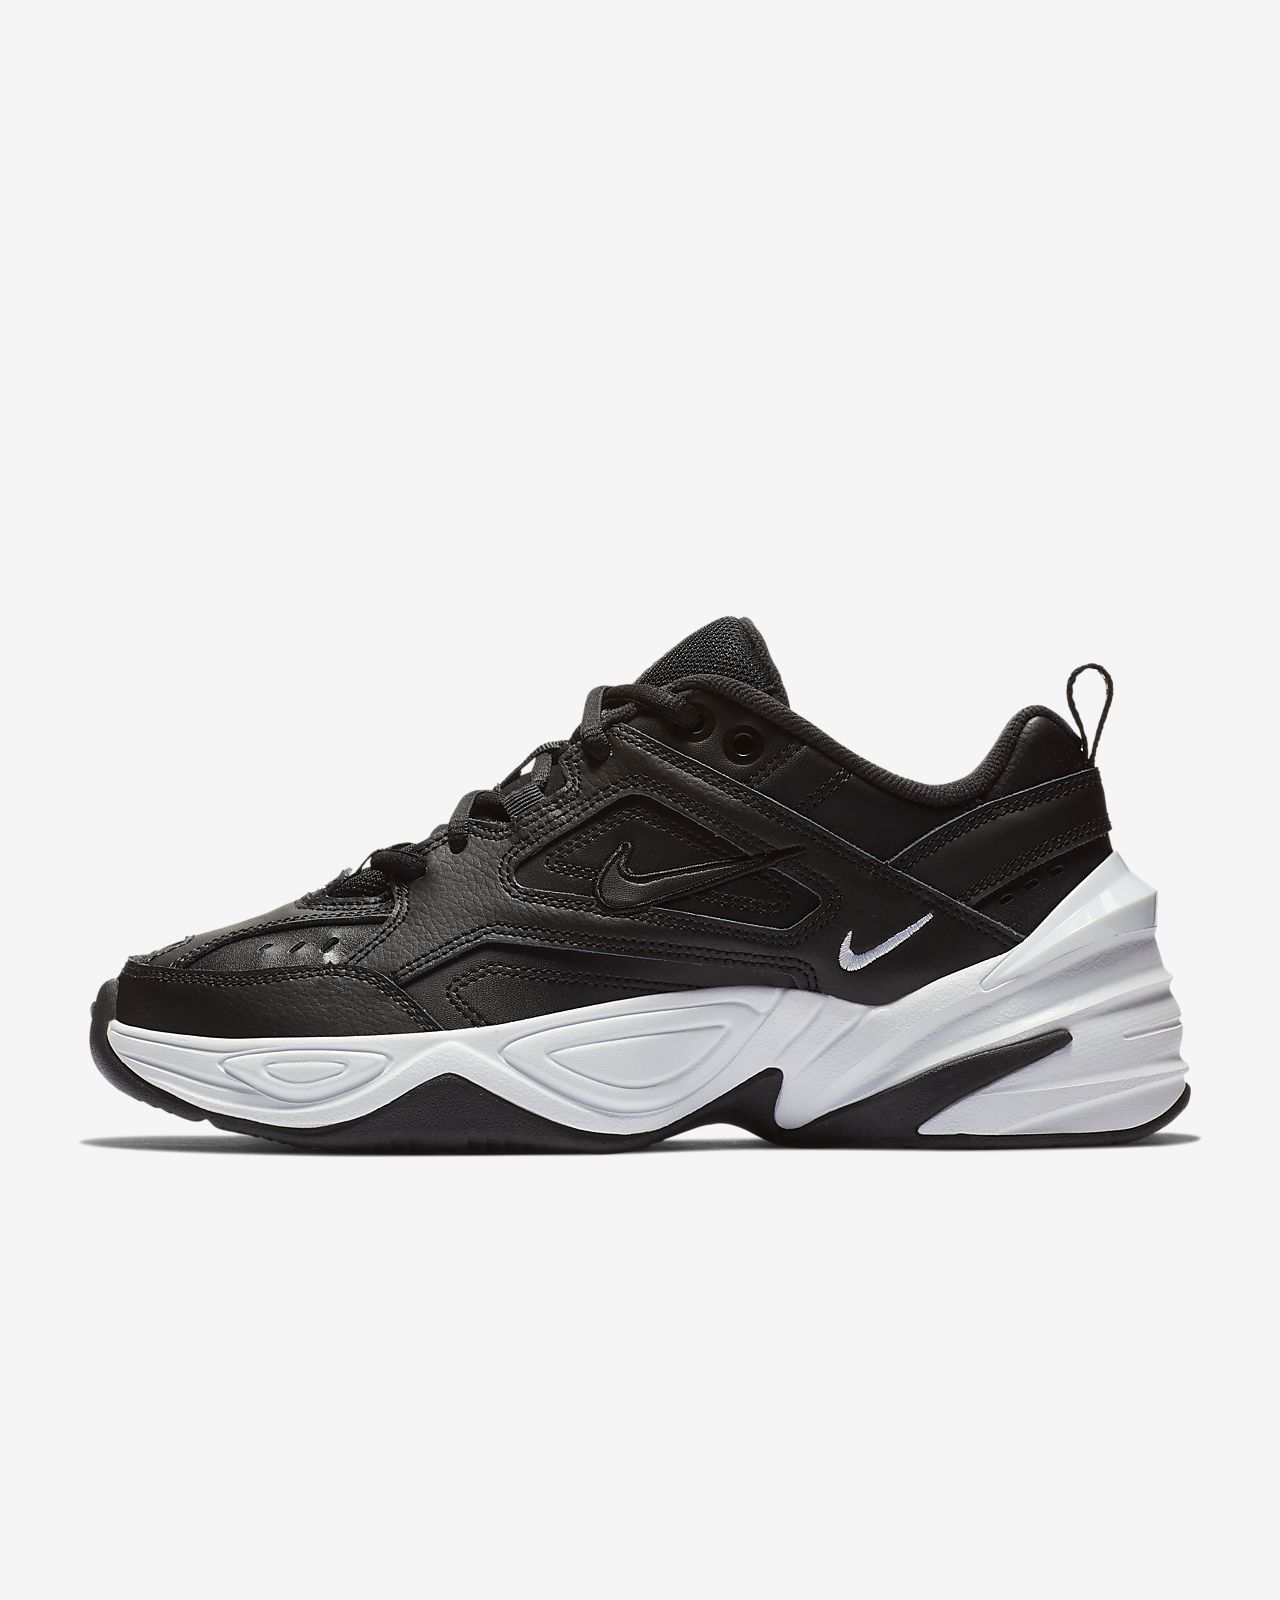 pretty nice 9660a 91198 Low Resolution Chaussure Nike M2K Tekno Chaussure Nike M2K Tekno